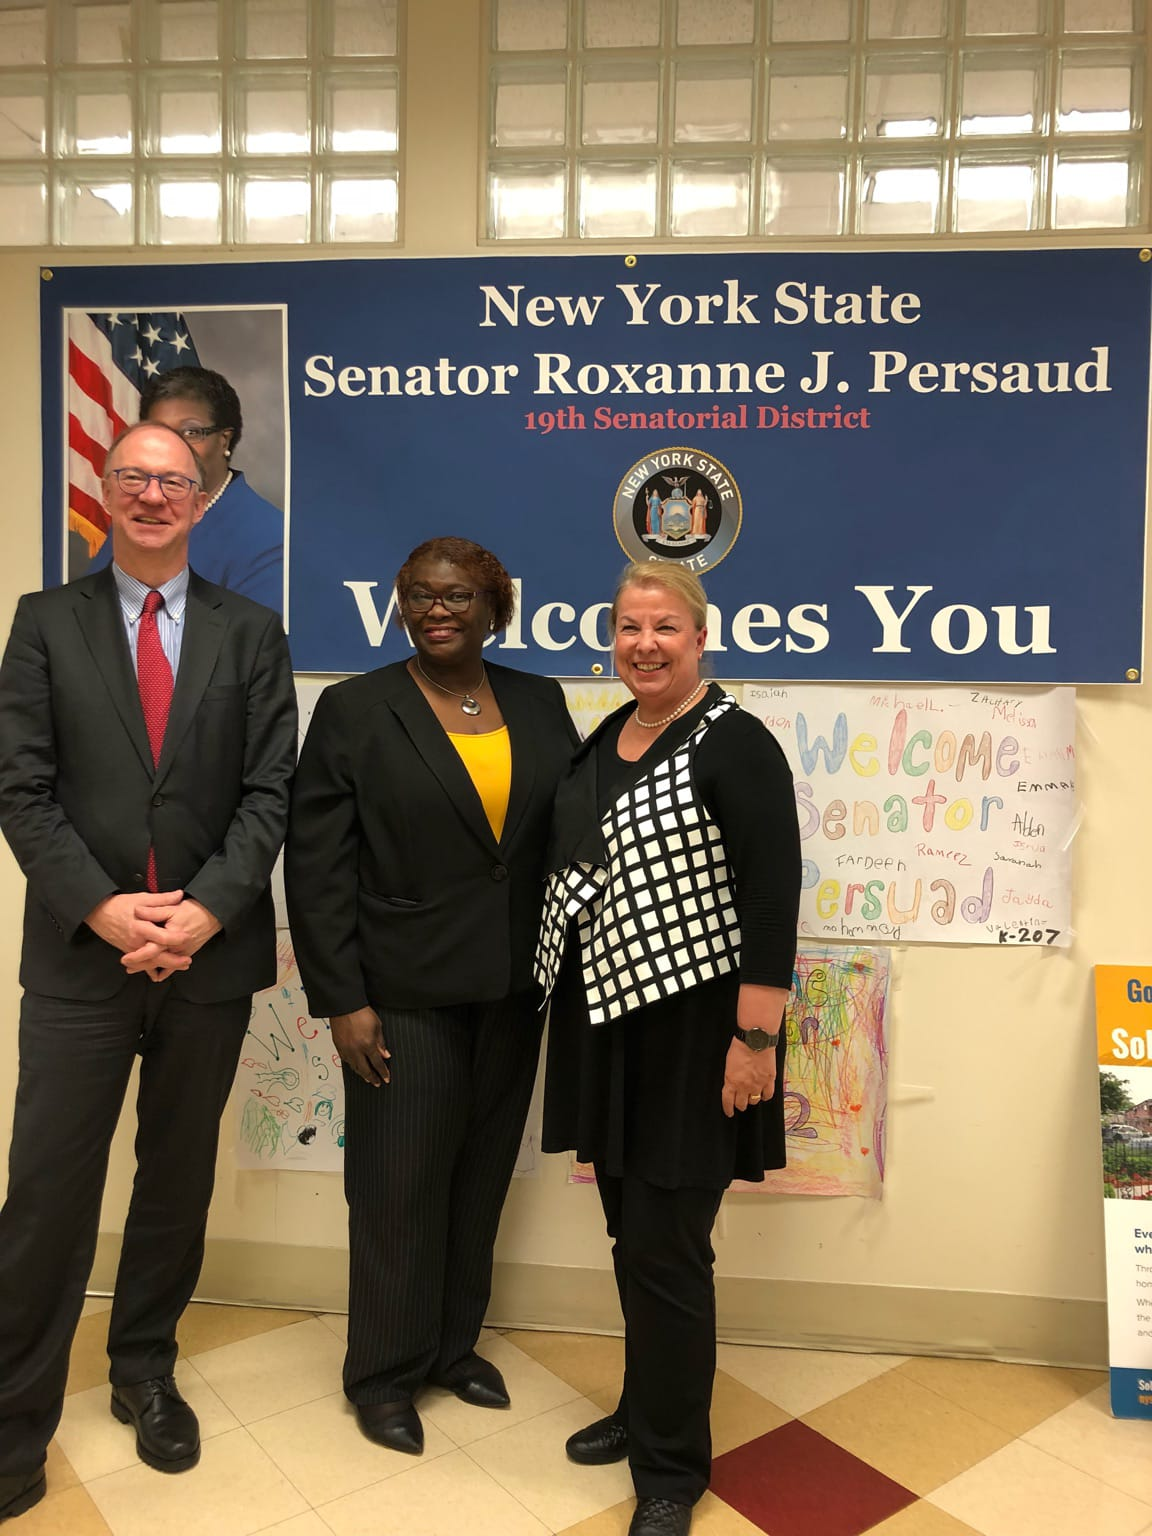 from left: Austrian Consul General Helmut Boeck, U.S. Senator Roxanne J. Persaud (NY State) and Minister Beate Hartinger-Klein